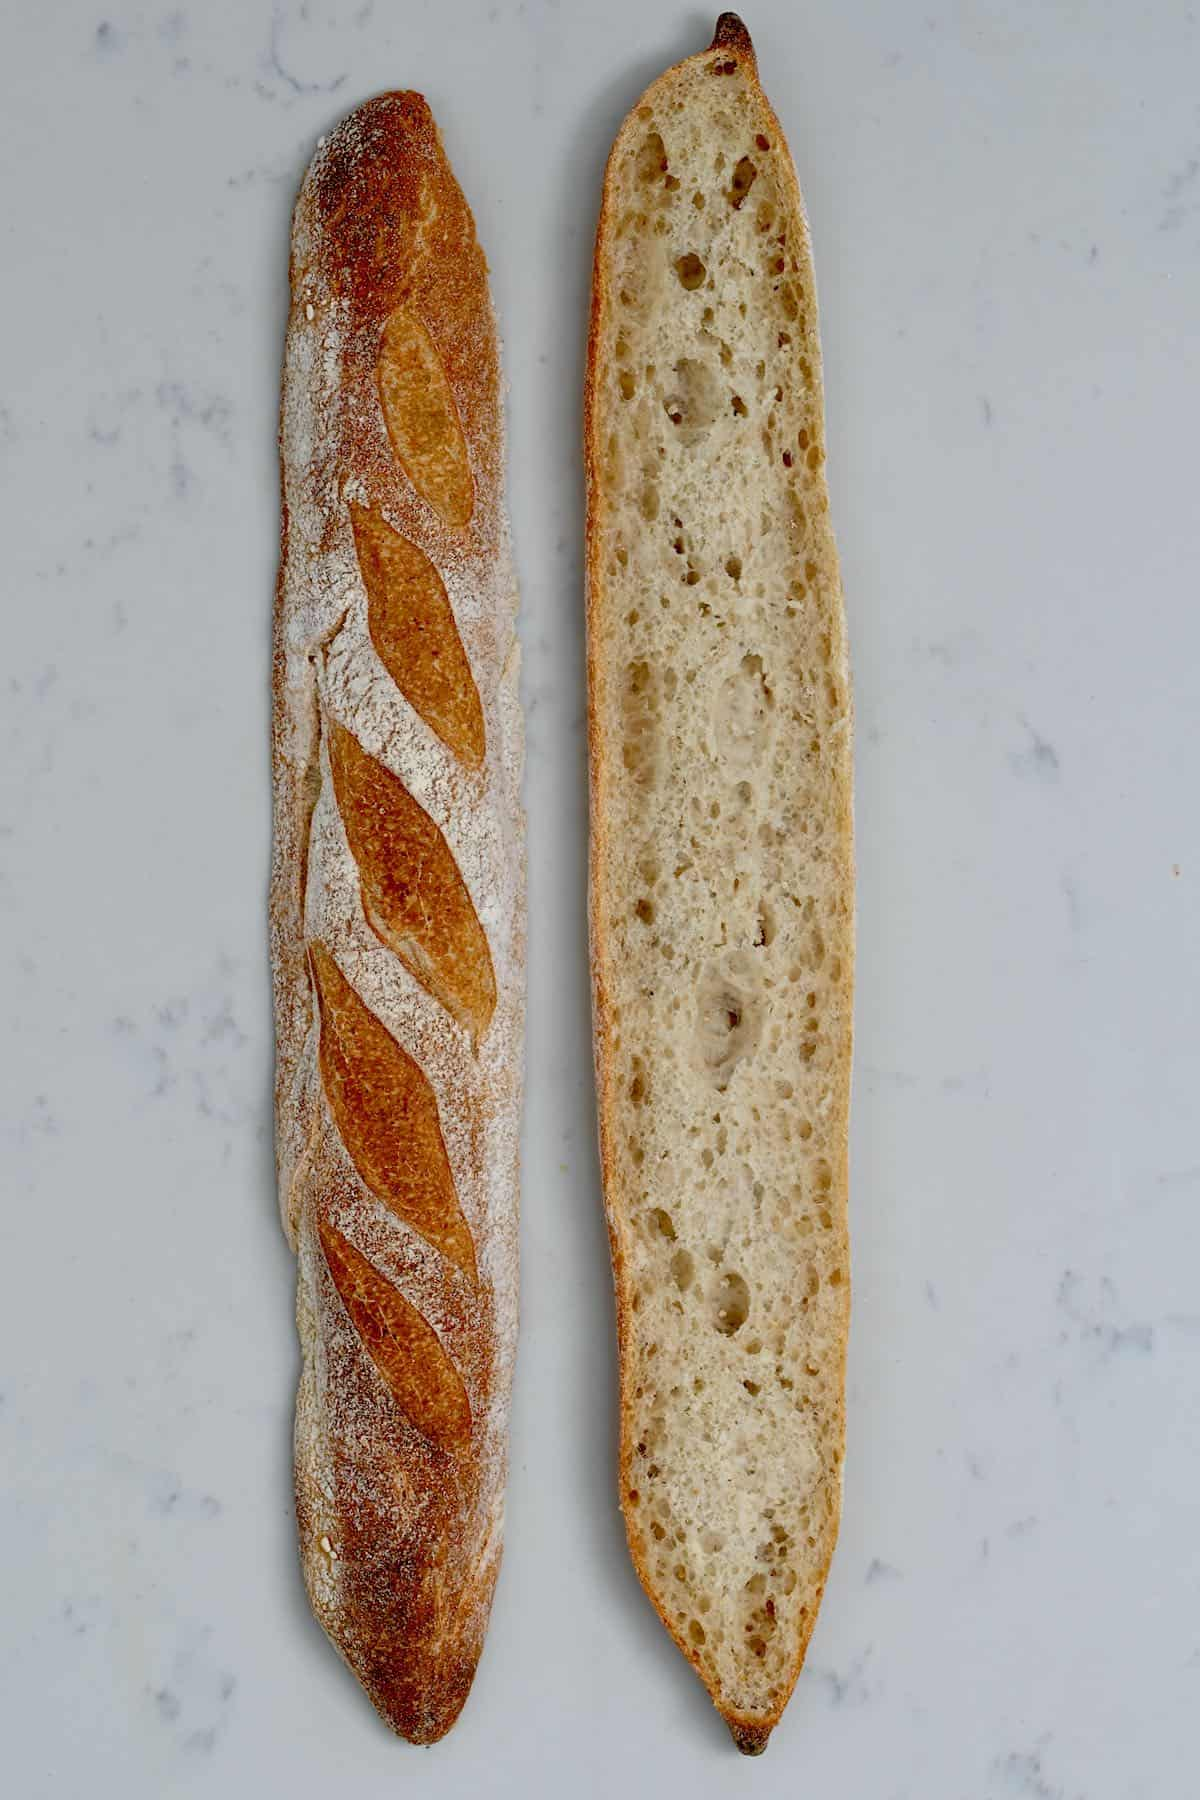 A baguette sliced in two